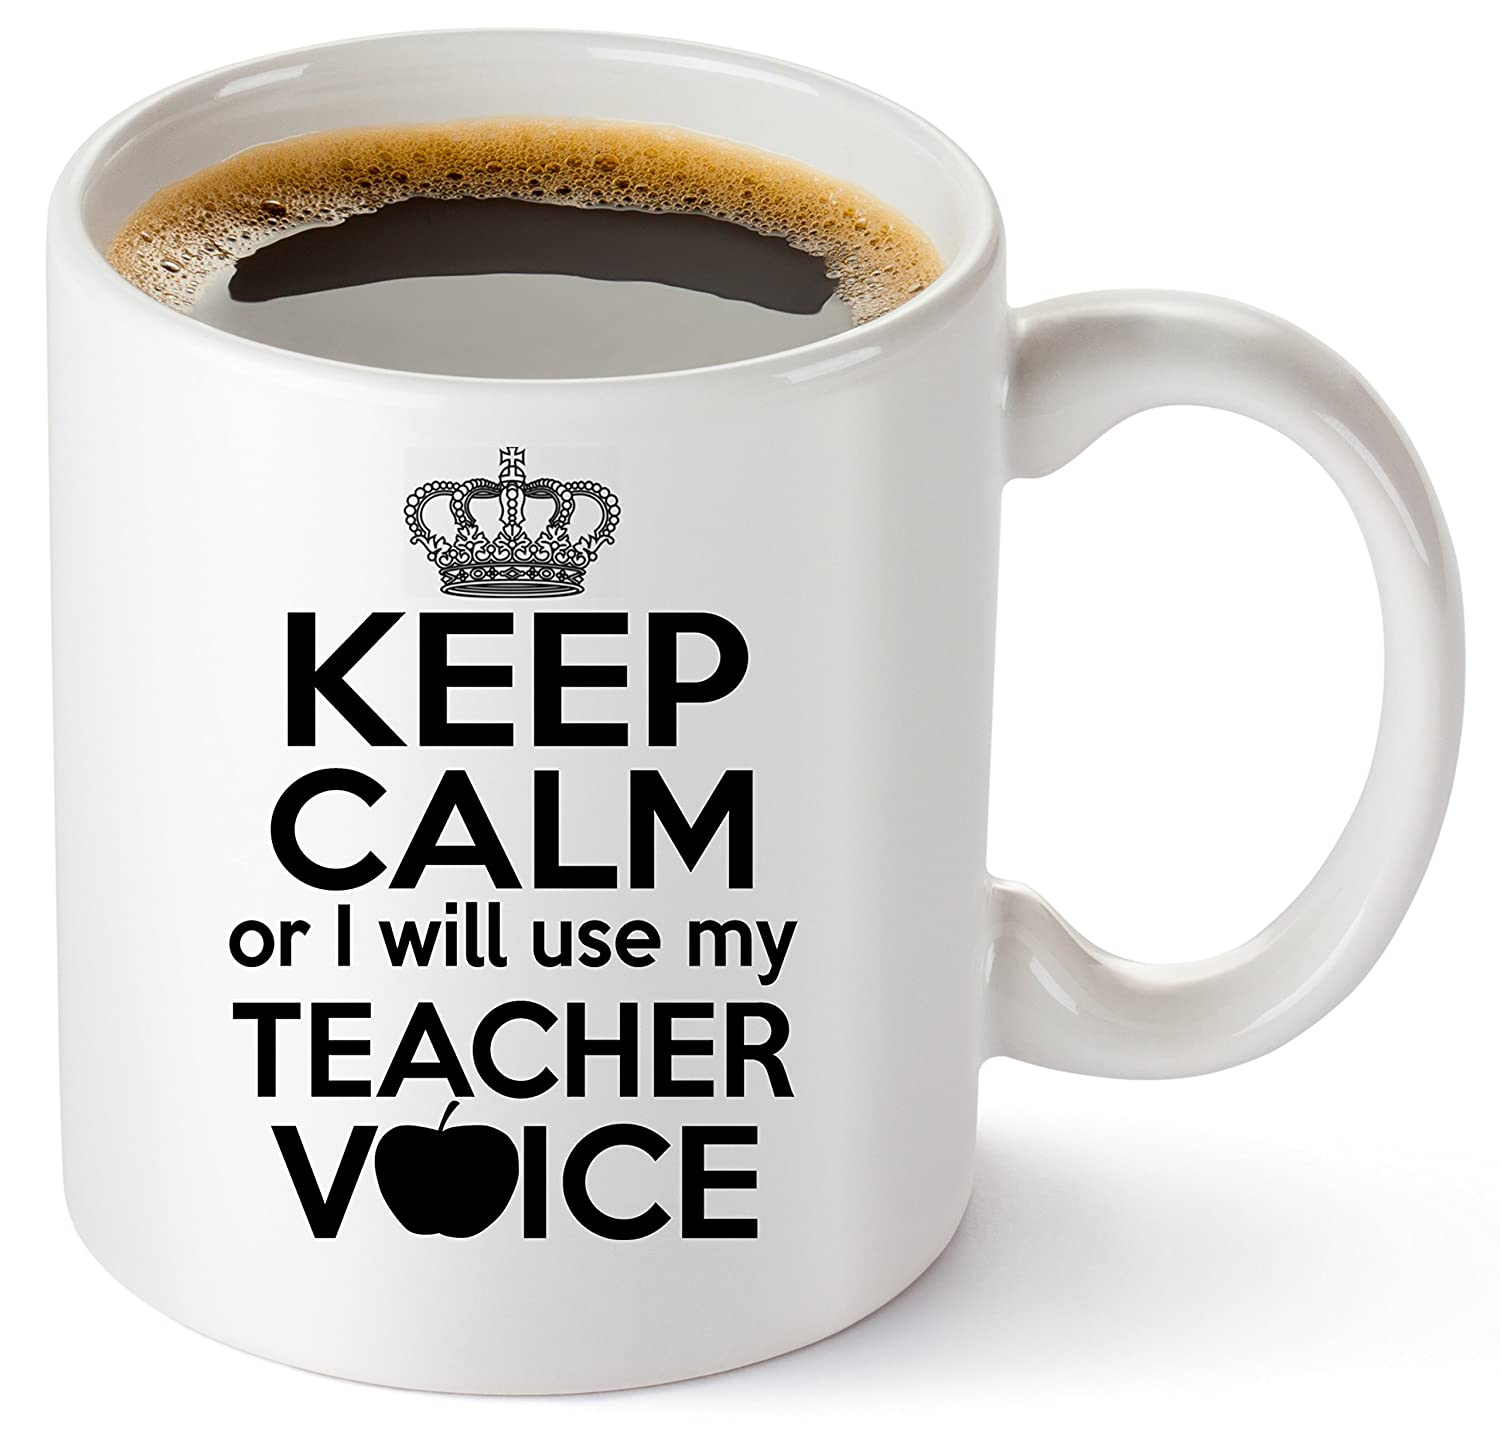 Muggies Teacher Has The Best Students Mug 11oz. Funny Coffee Tea Cup. Unique Fun Christmas, Xmas, Birthday, Classroom School Teacher Mom Wife Teacher2